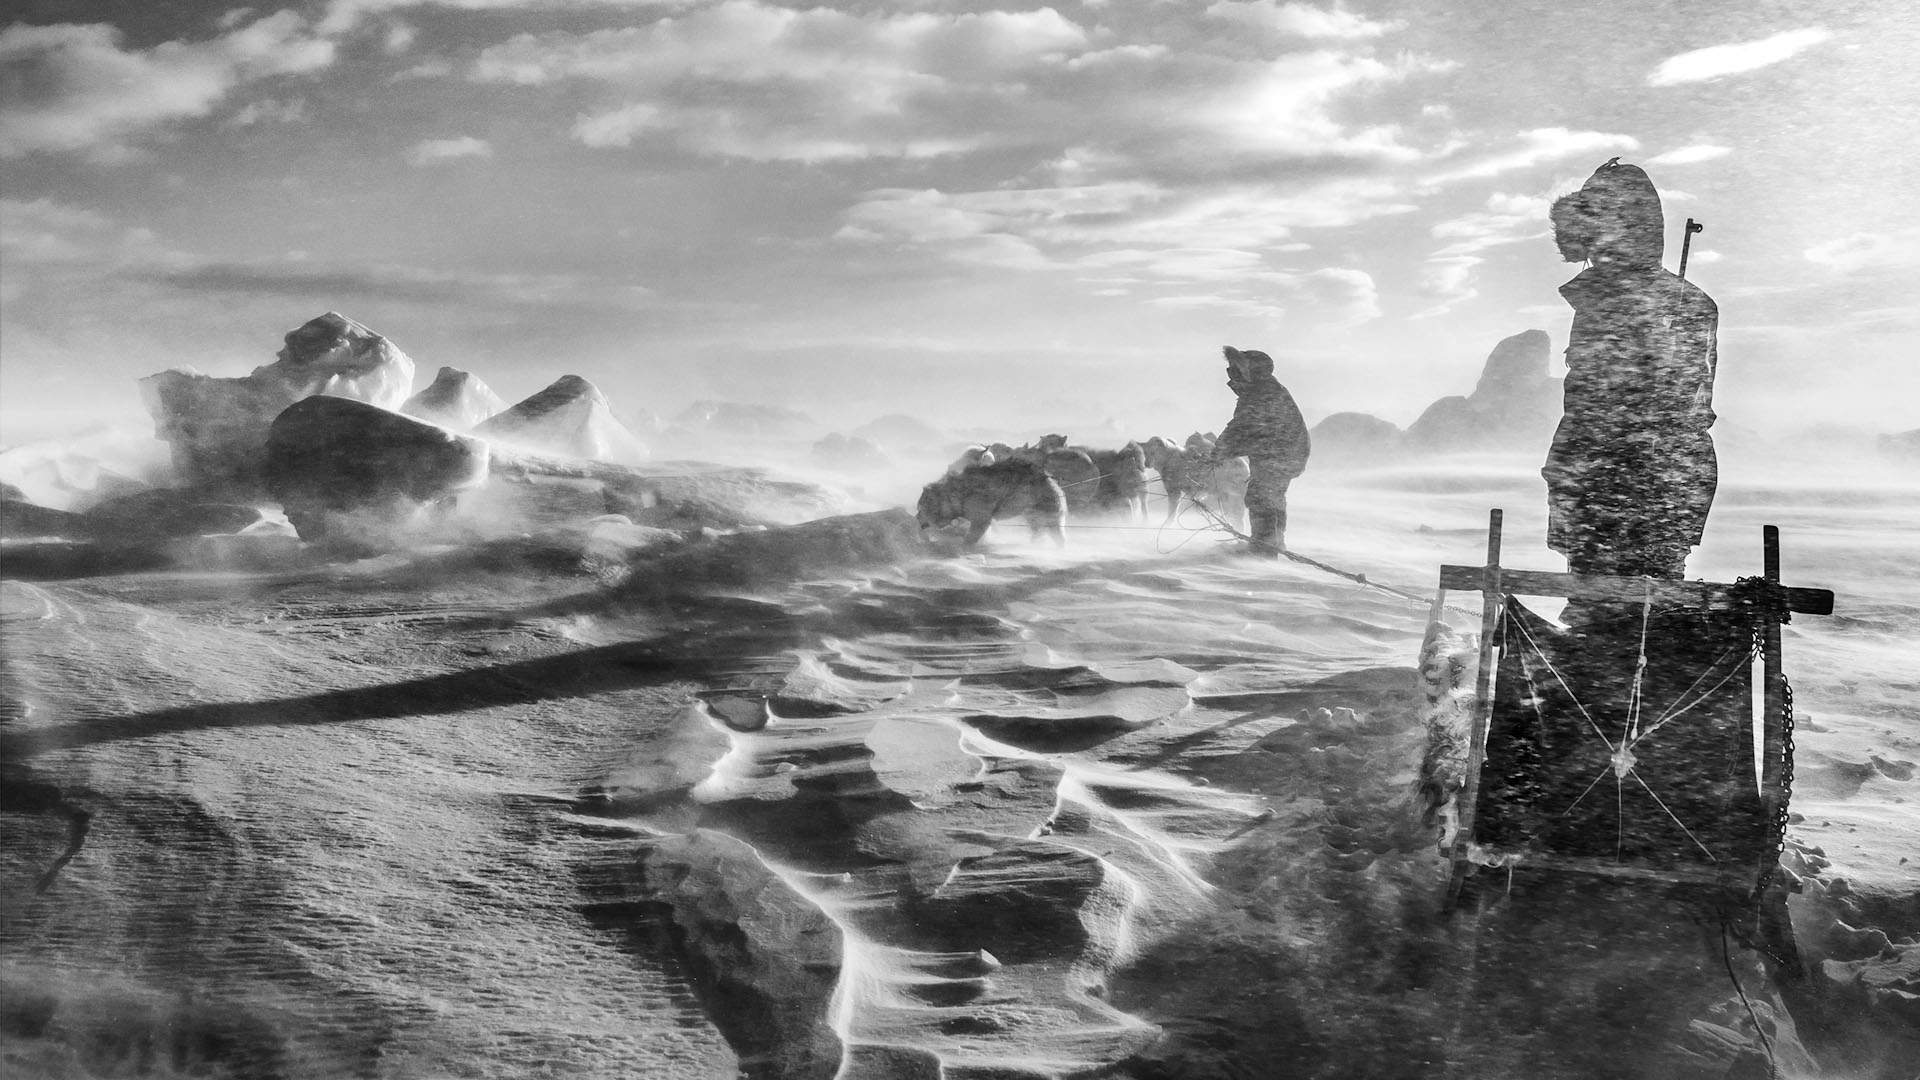 The Last of the big Hunters by David Yarrow